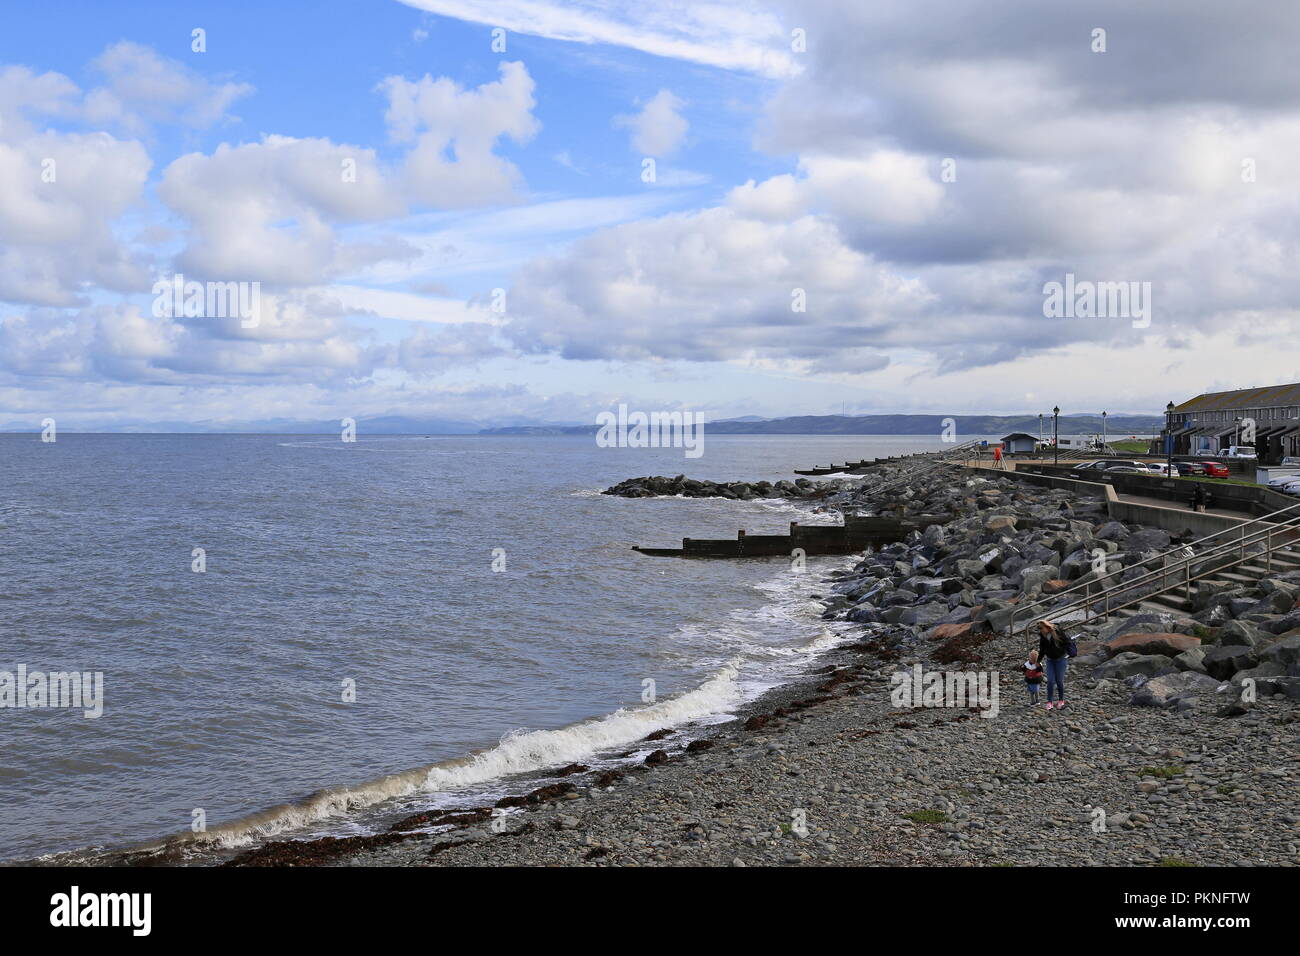 North Beach, Aberaeron, Cardigan Bay, Ceredigion, Wales, Great Britain, United Kingdom, UK, Europe - Stock Image